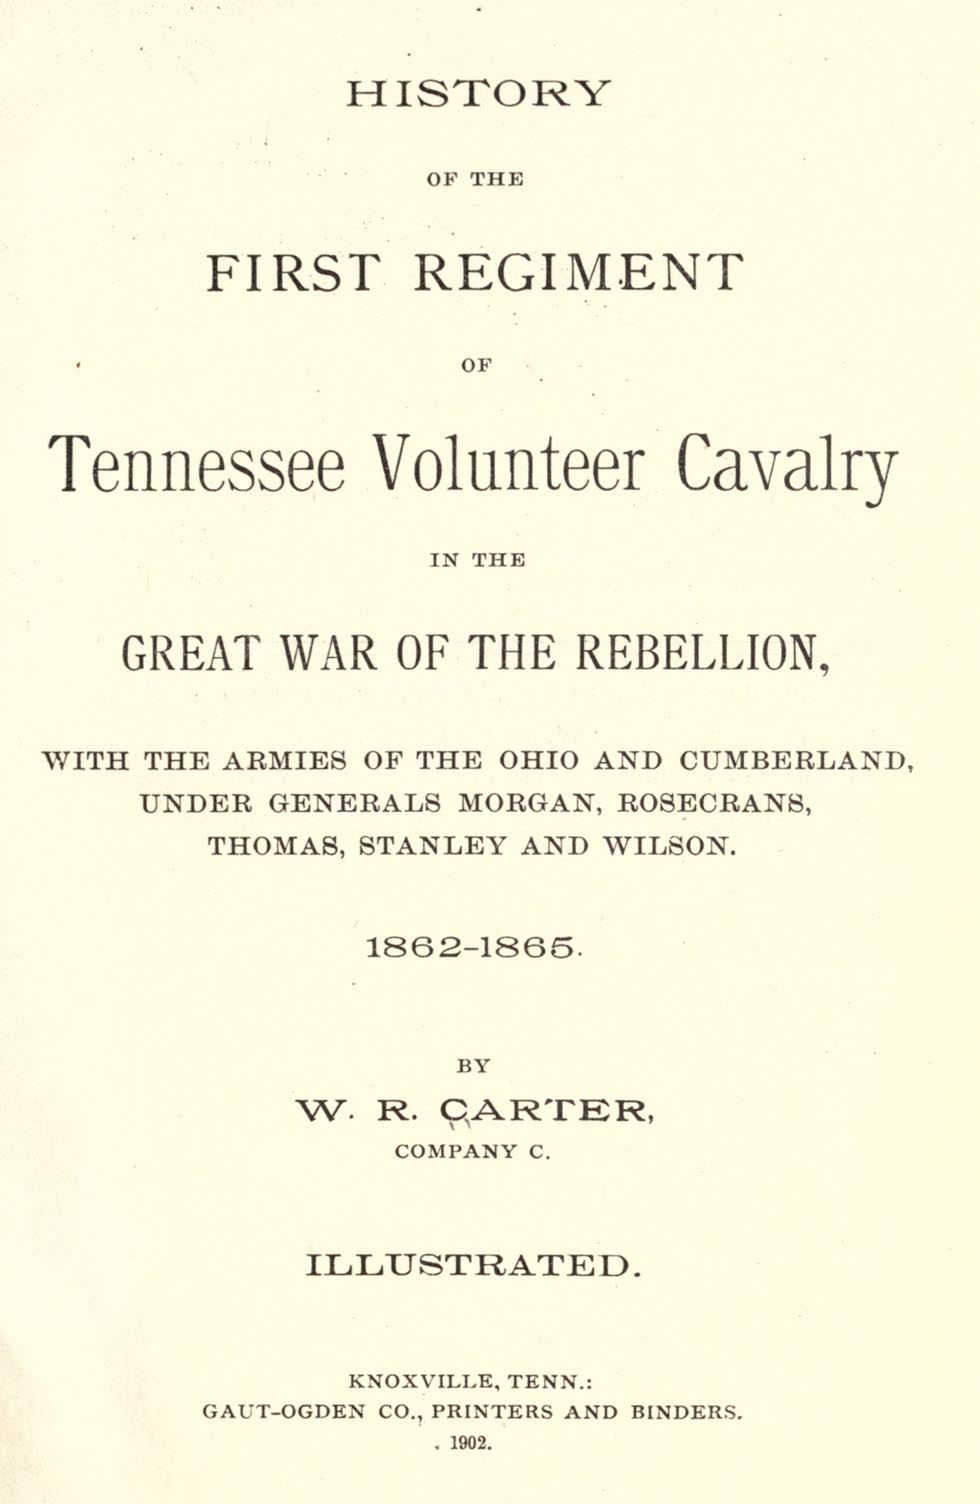 W R Carter book - History of the First Regiment of Volunteer Calvary